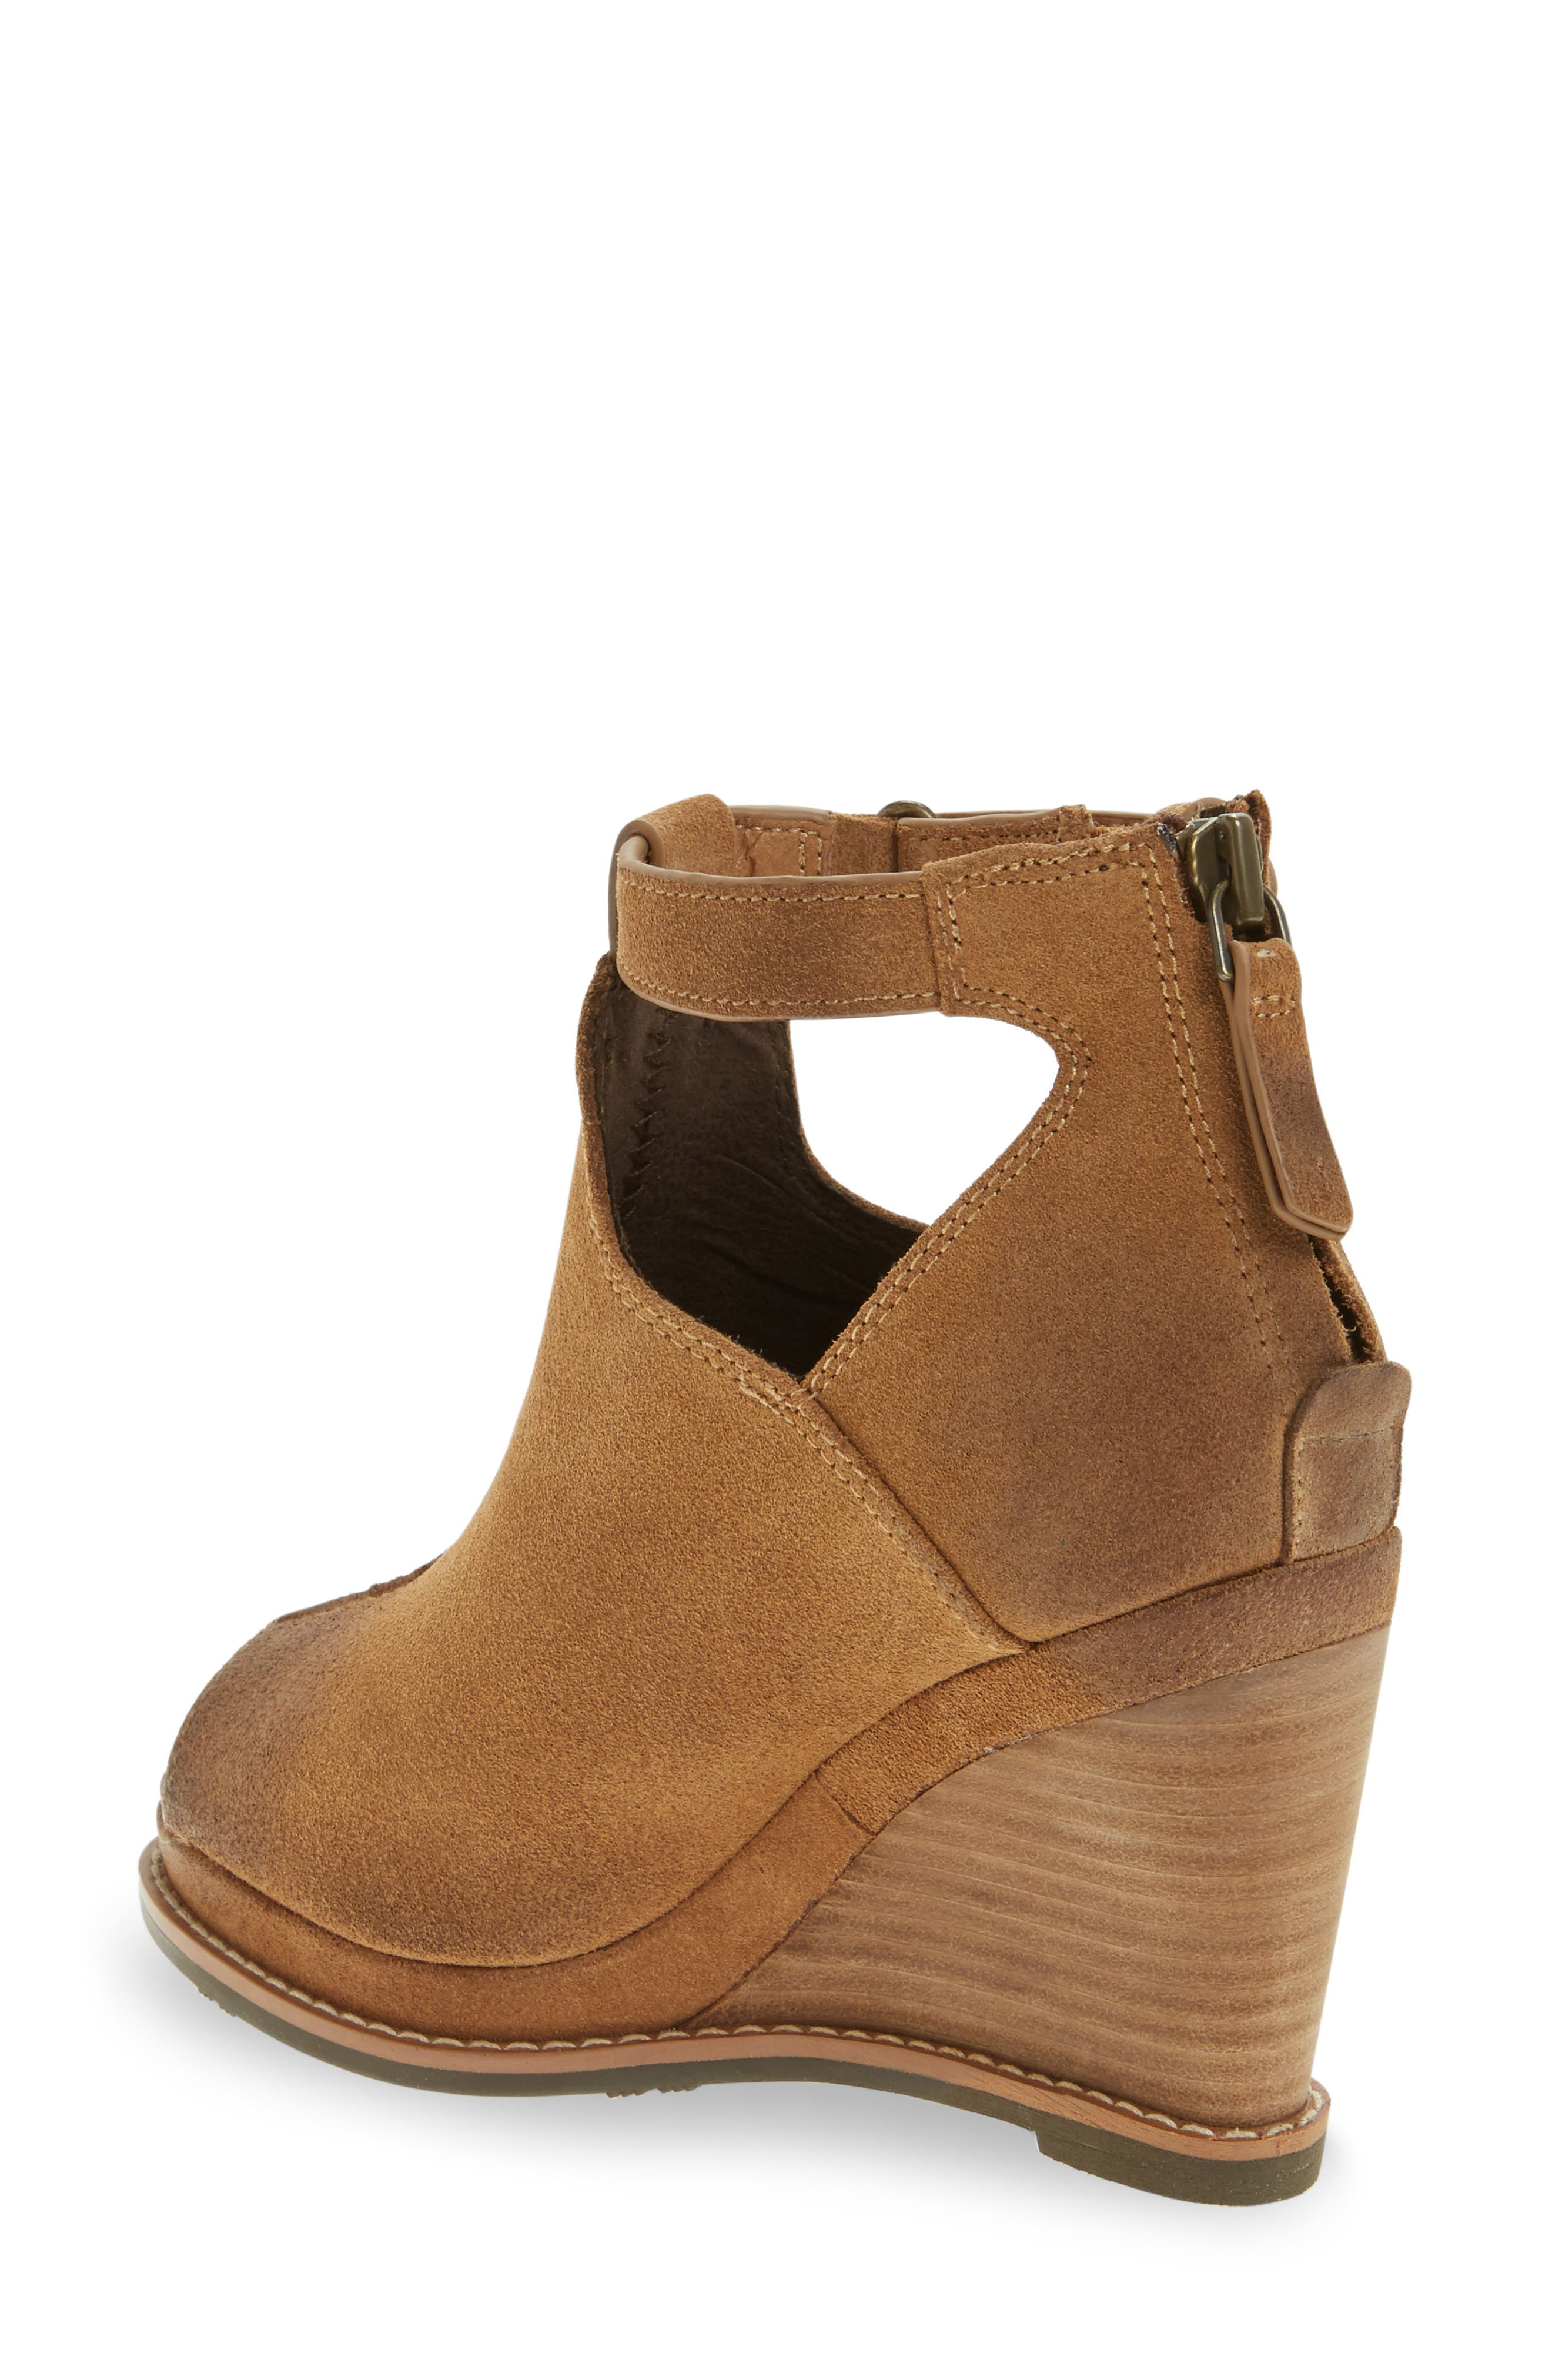 Backstage Wedge Bootie,                             Alternate thumbnail 4, color,